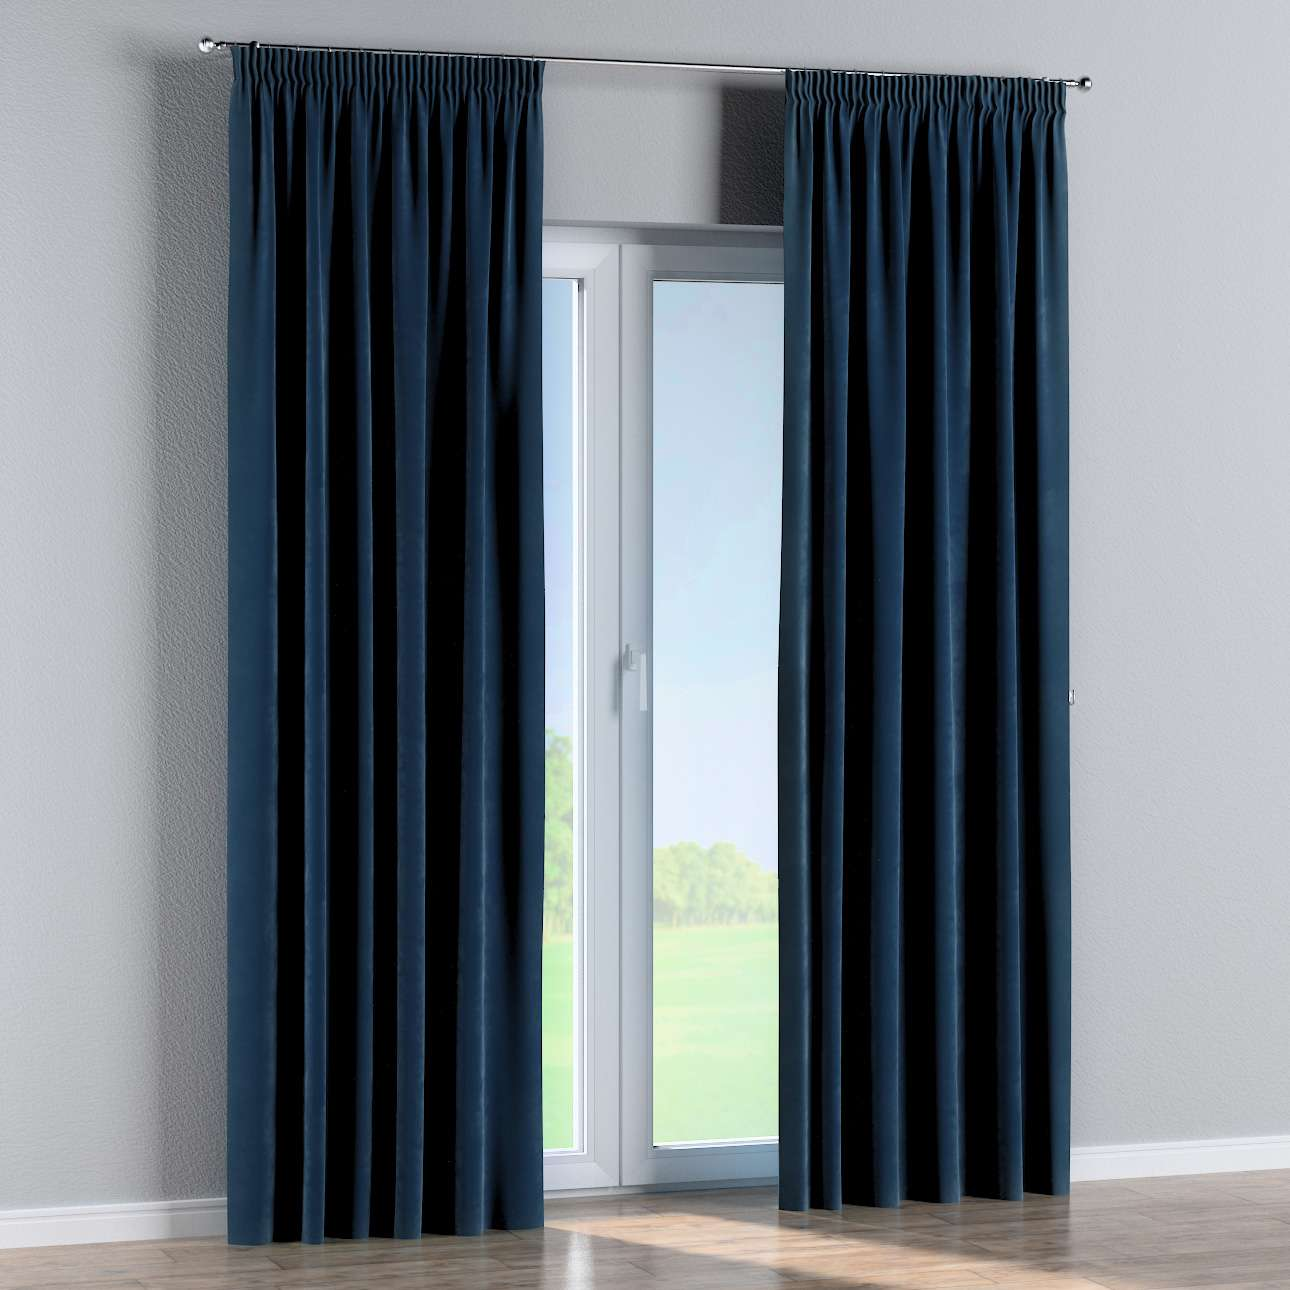 Pencil pleat curtains in collection Velvet, fabric: 704-29